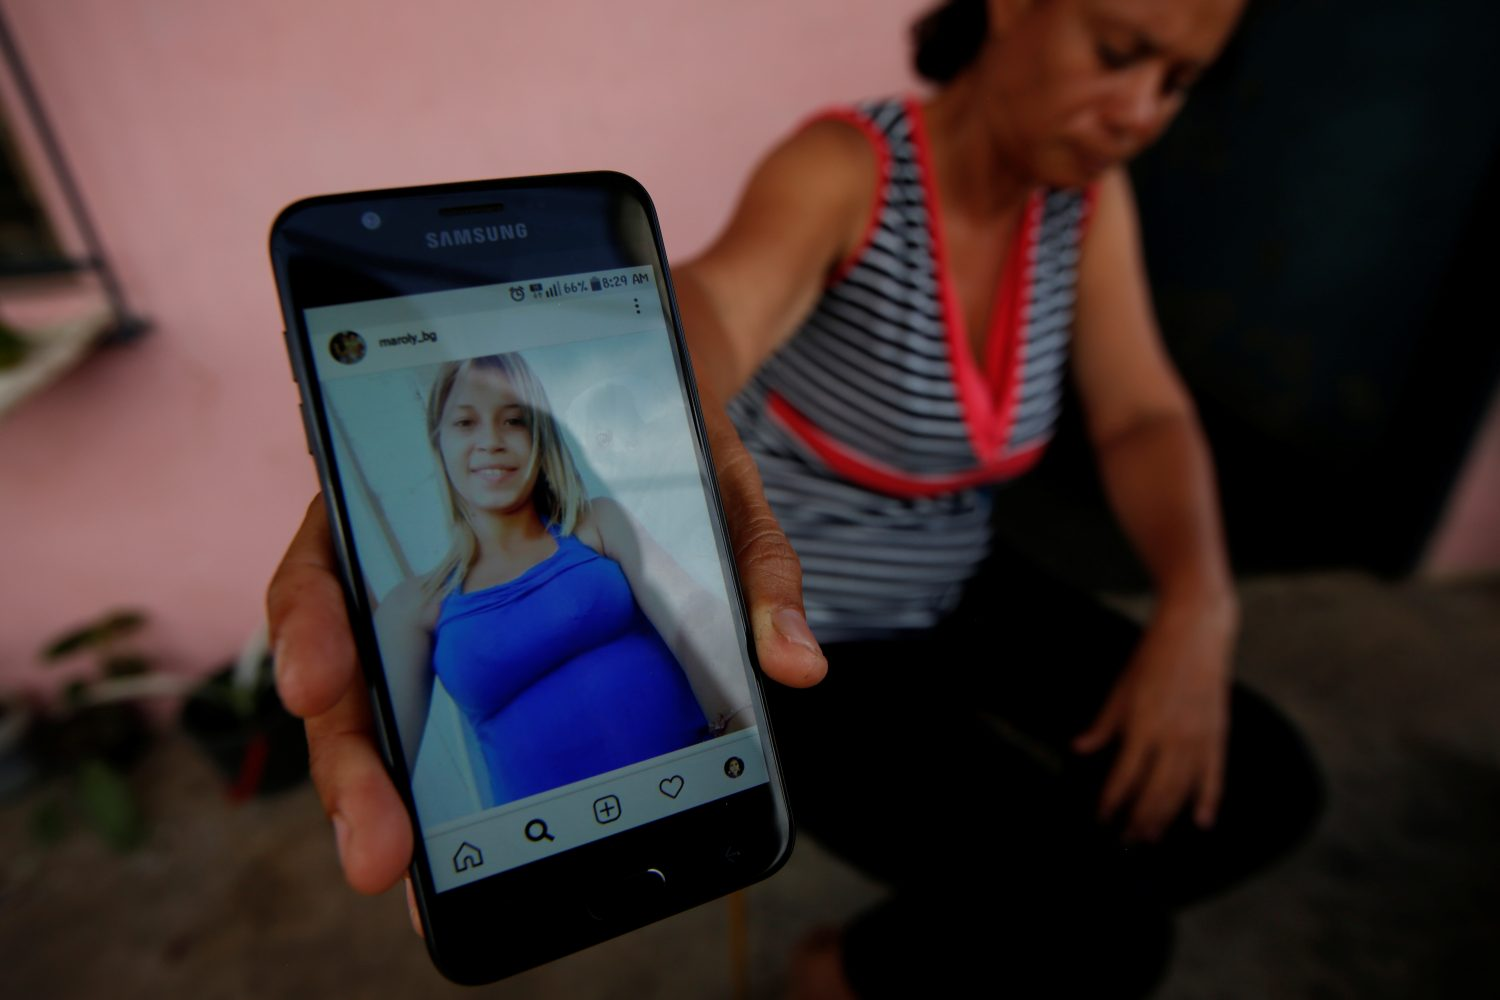 Carolina Gil shows a picture of her daughter Maroly Bastardo, an eight months pregnant woman who, along with her children, her husband's sister, uncle and father, disappeared in the Caribbean Sea after boarding a smuggler's boat during an attempt to cross from Venezuela to Trinidad and Tobago, at her home in El Tigre, Venezuela, June 4, 2019. REUTERS/Ivan Alvarado